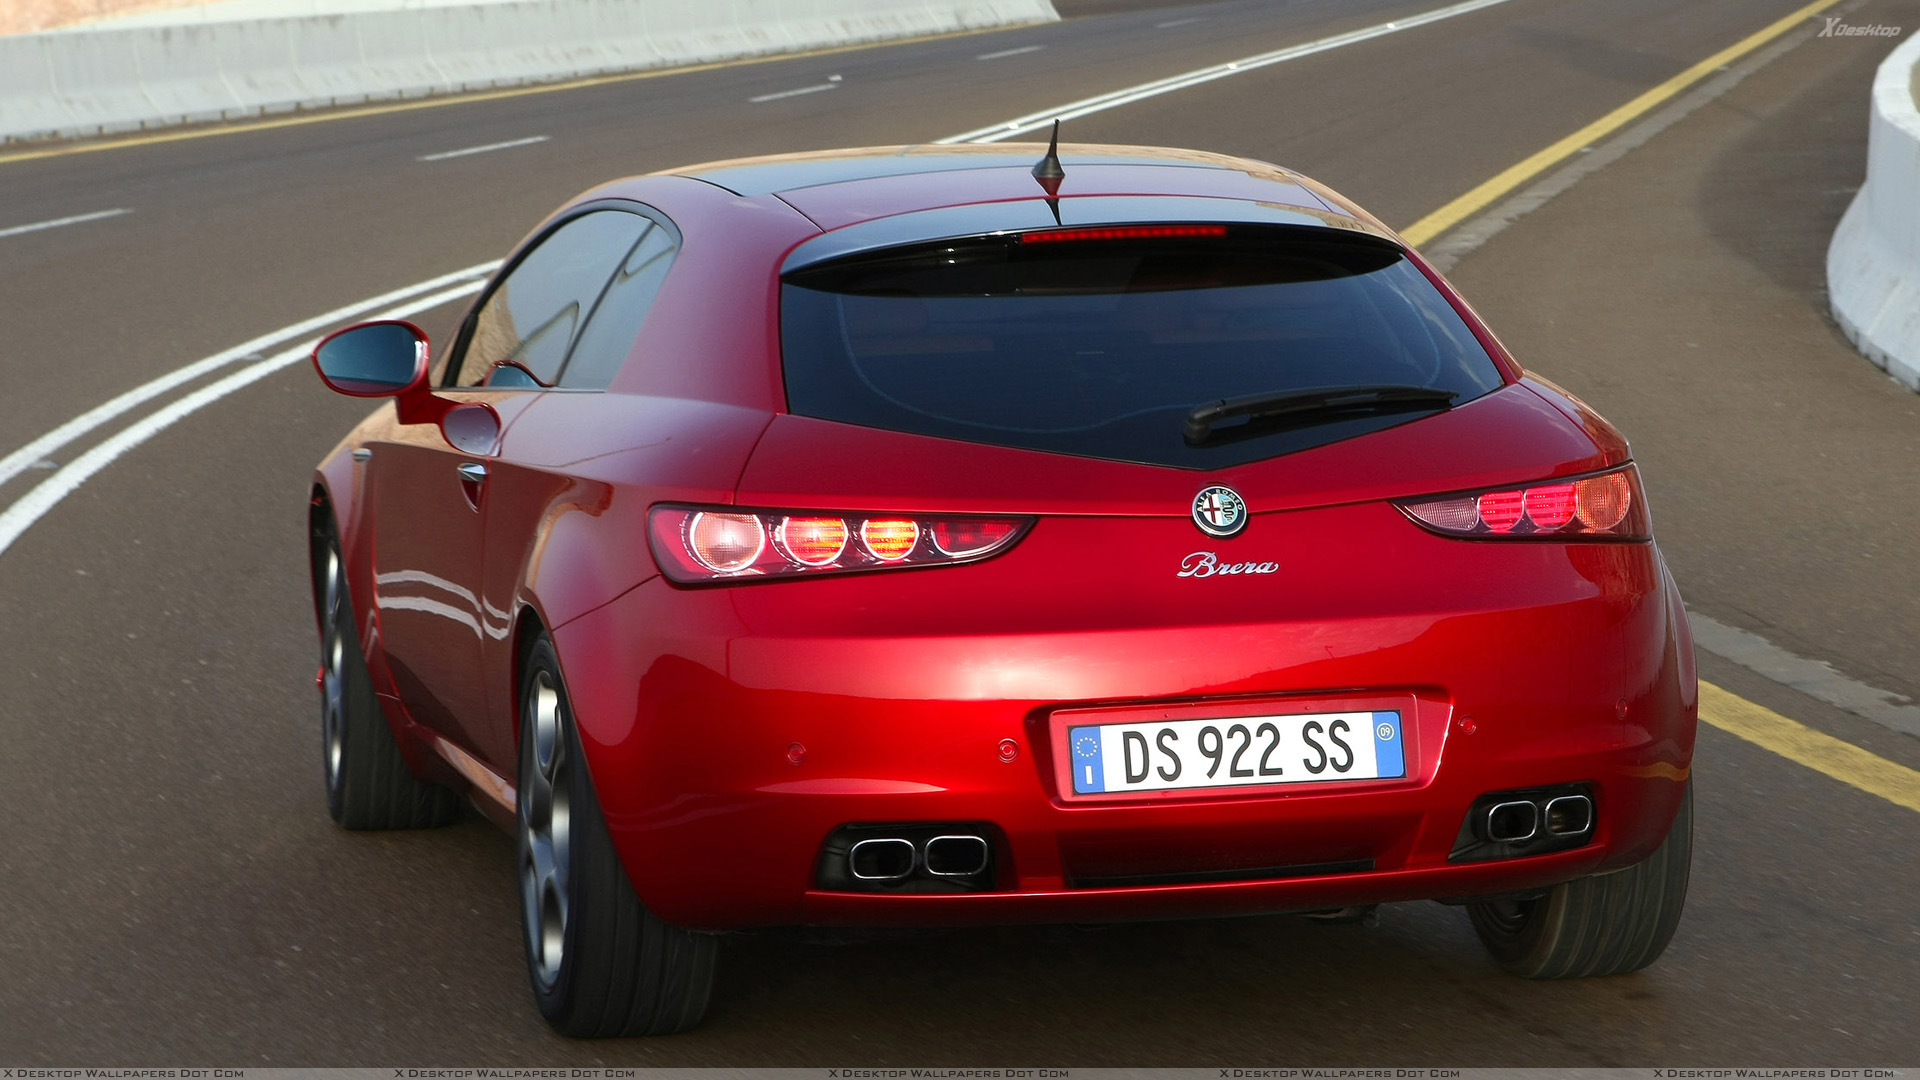 Pictures of alfa romeo brera 2009 #8